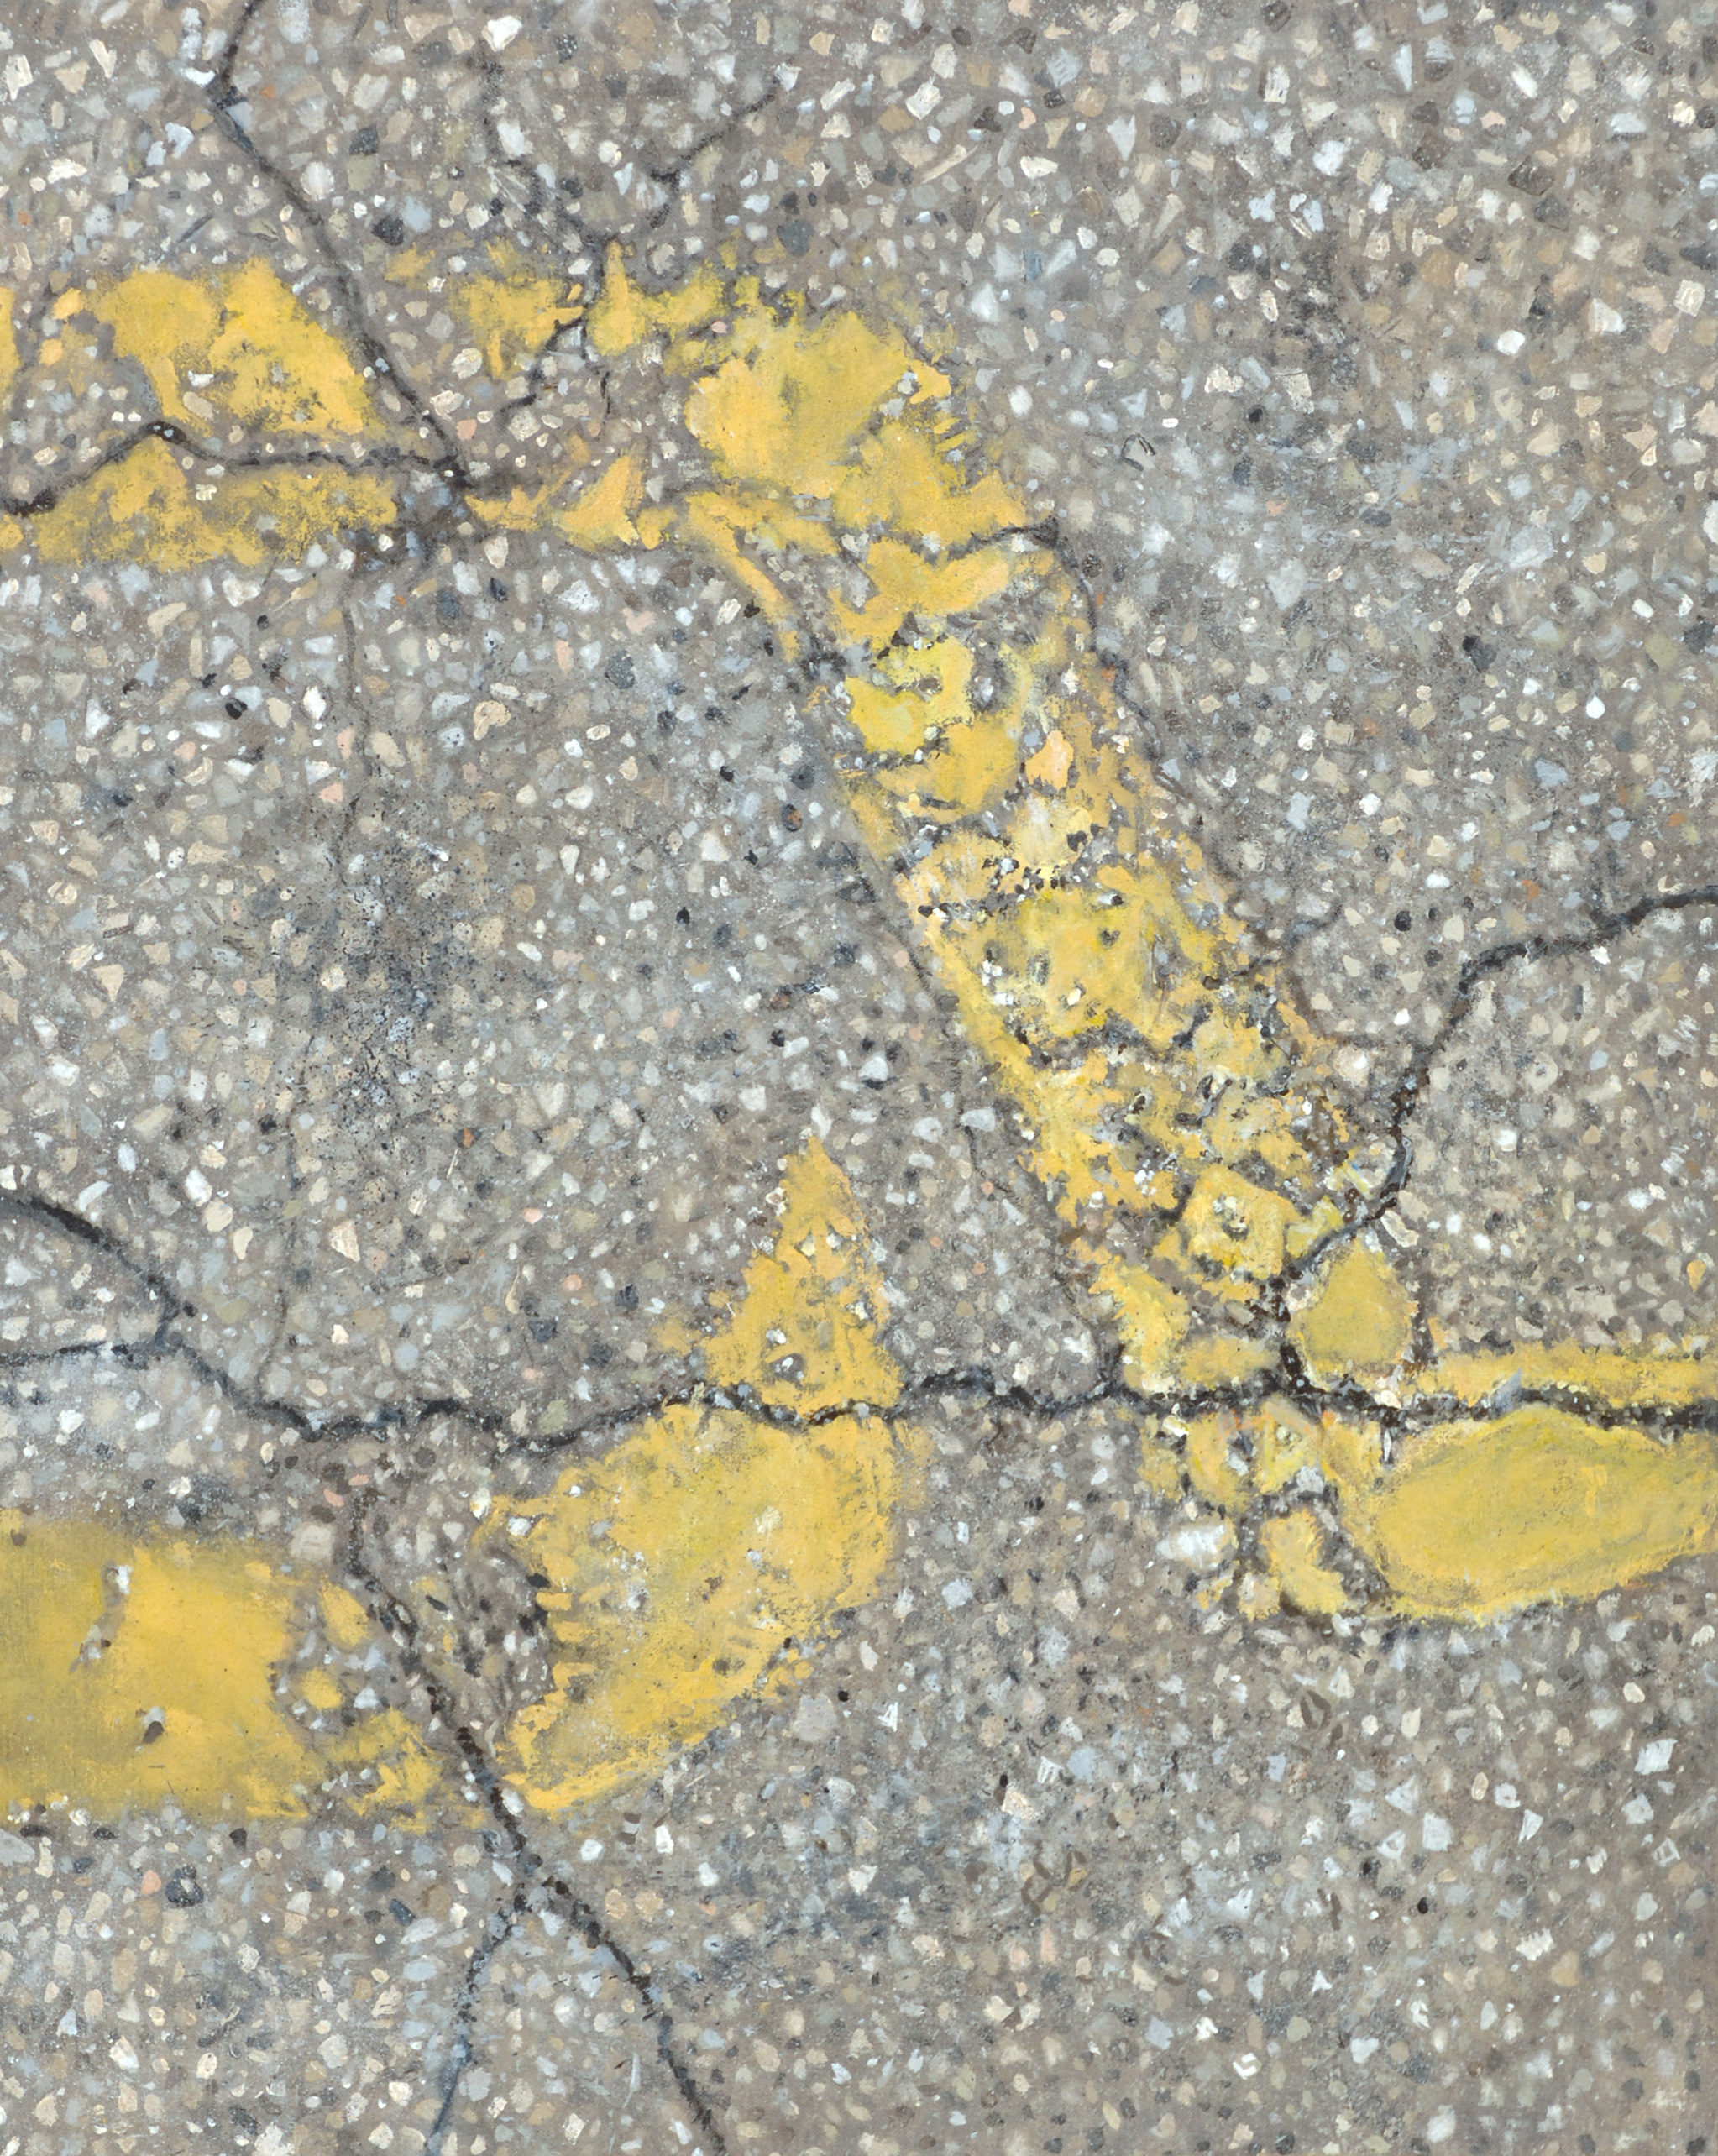 A Cracked Groundscape